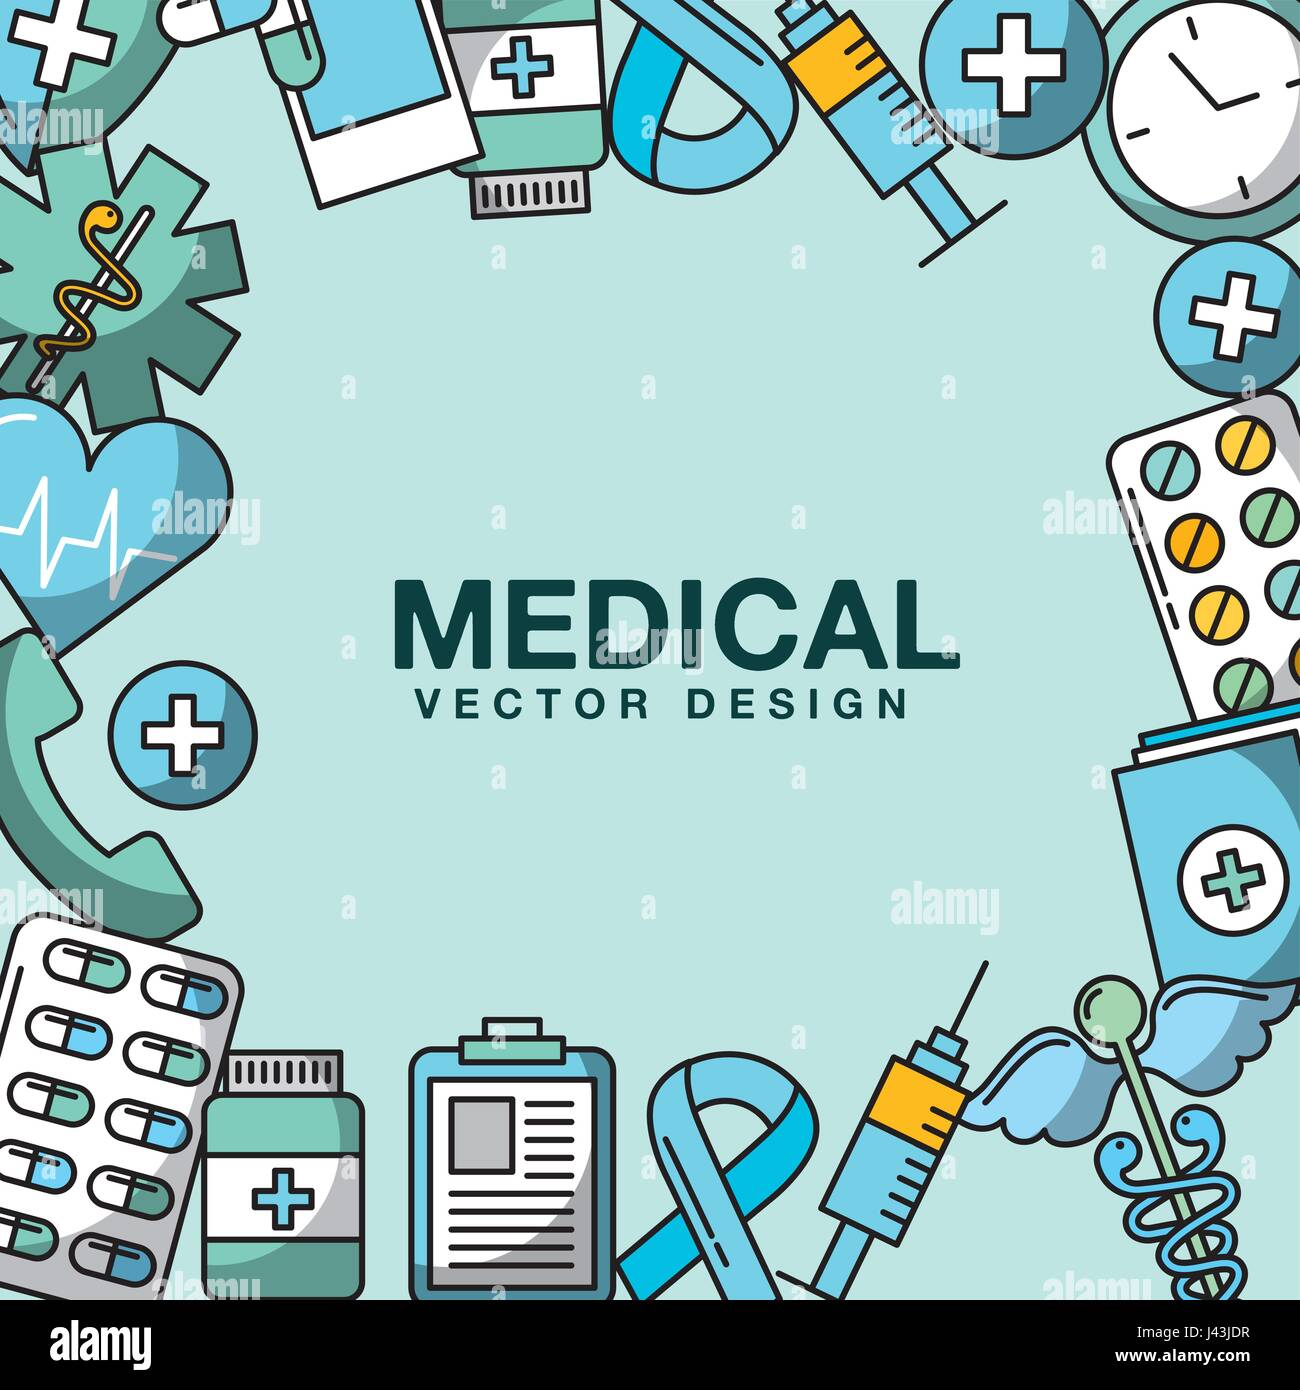 healthcare related icons image - Stock Image